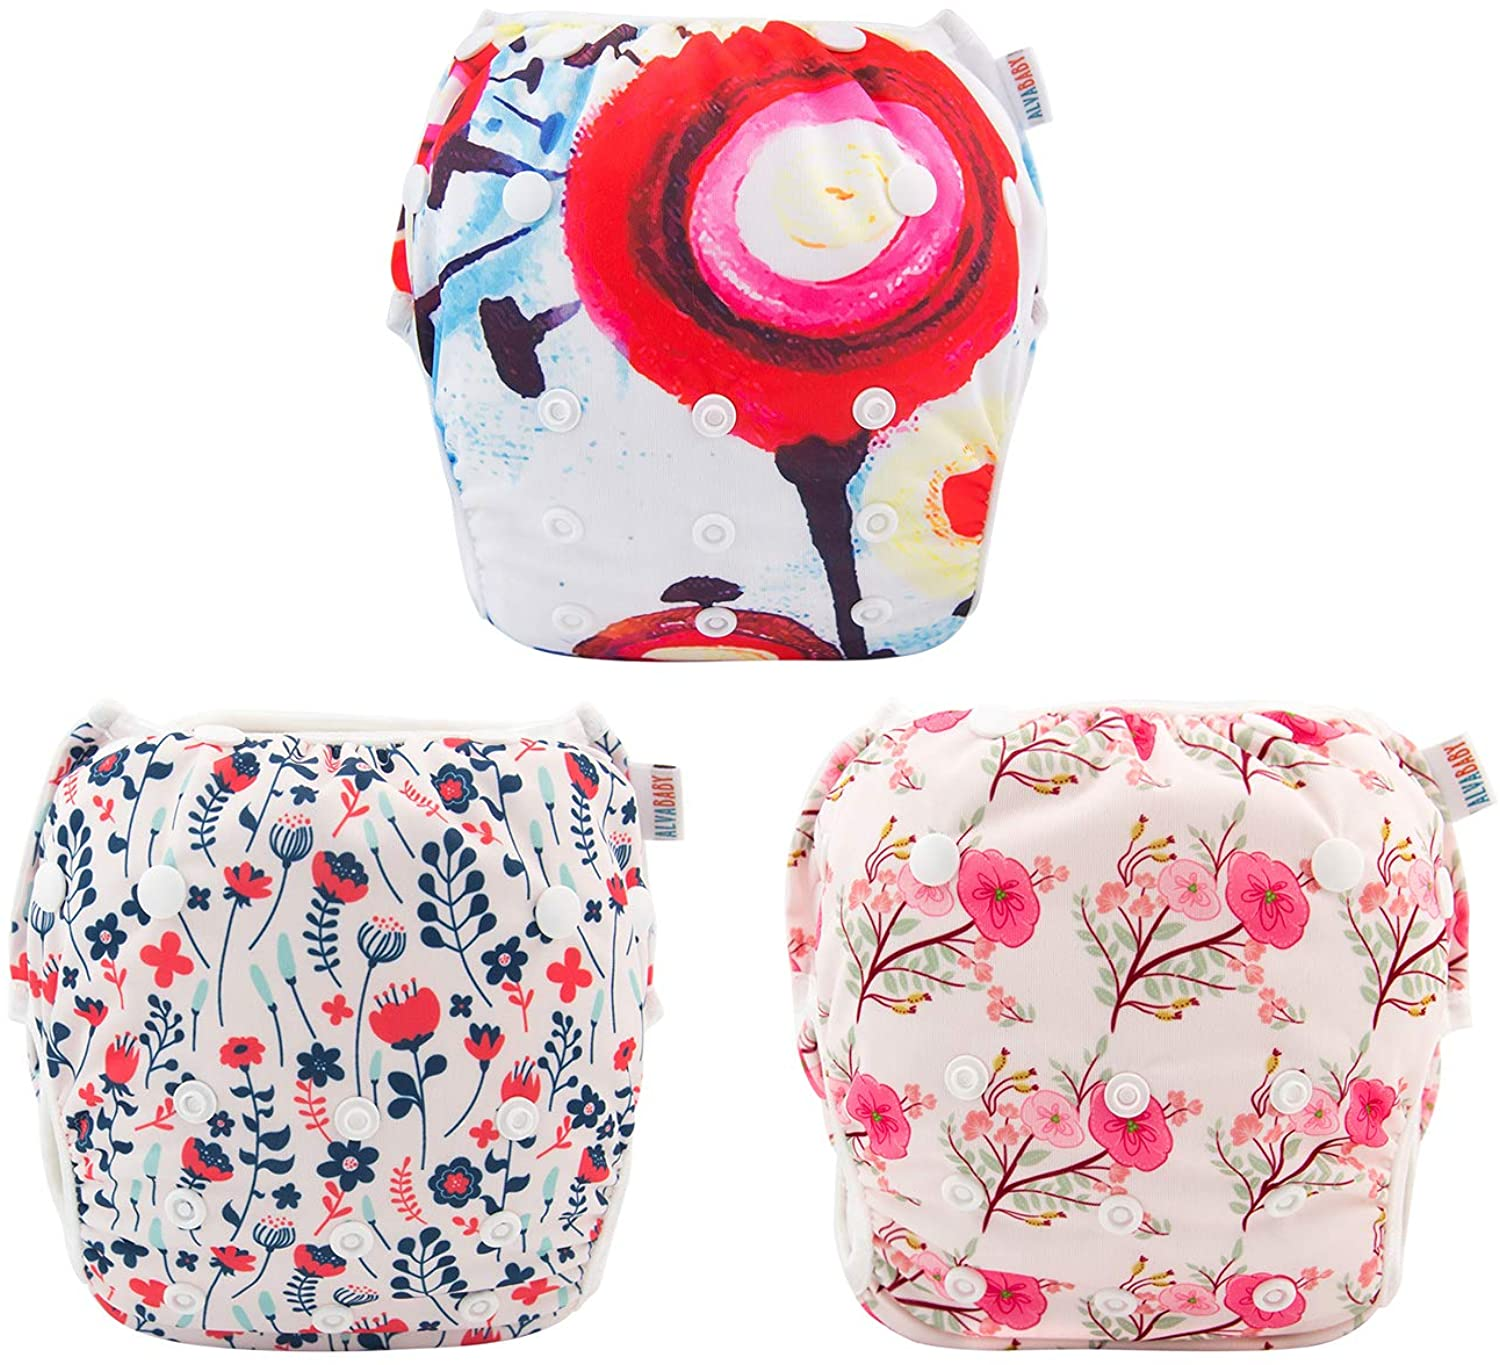 ALVABABY Swim Diapers 3pcs Large Size Reuseable Washable & Adjustable for Swimming Lesson 3ZSW06